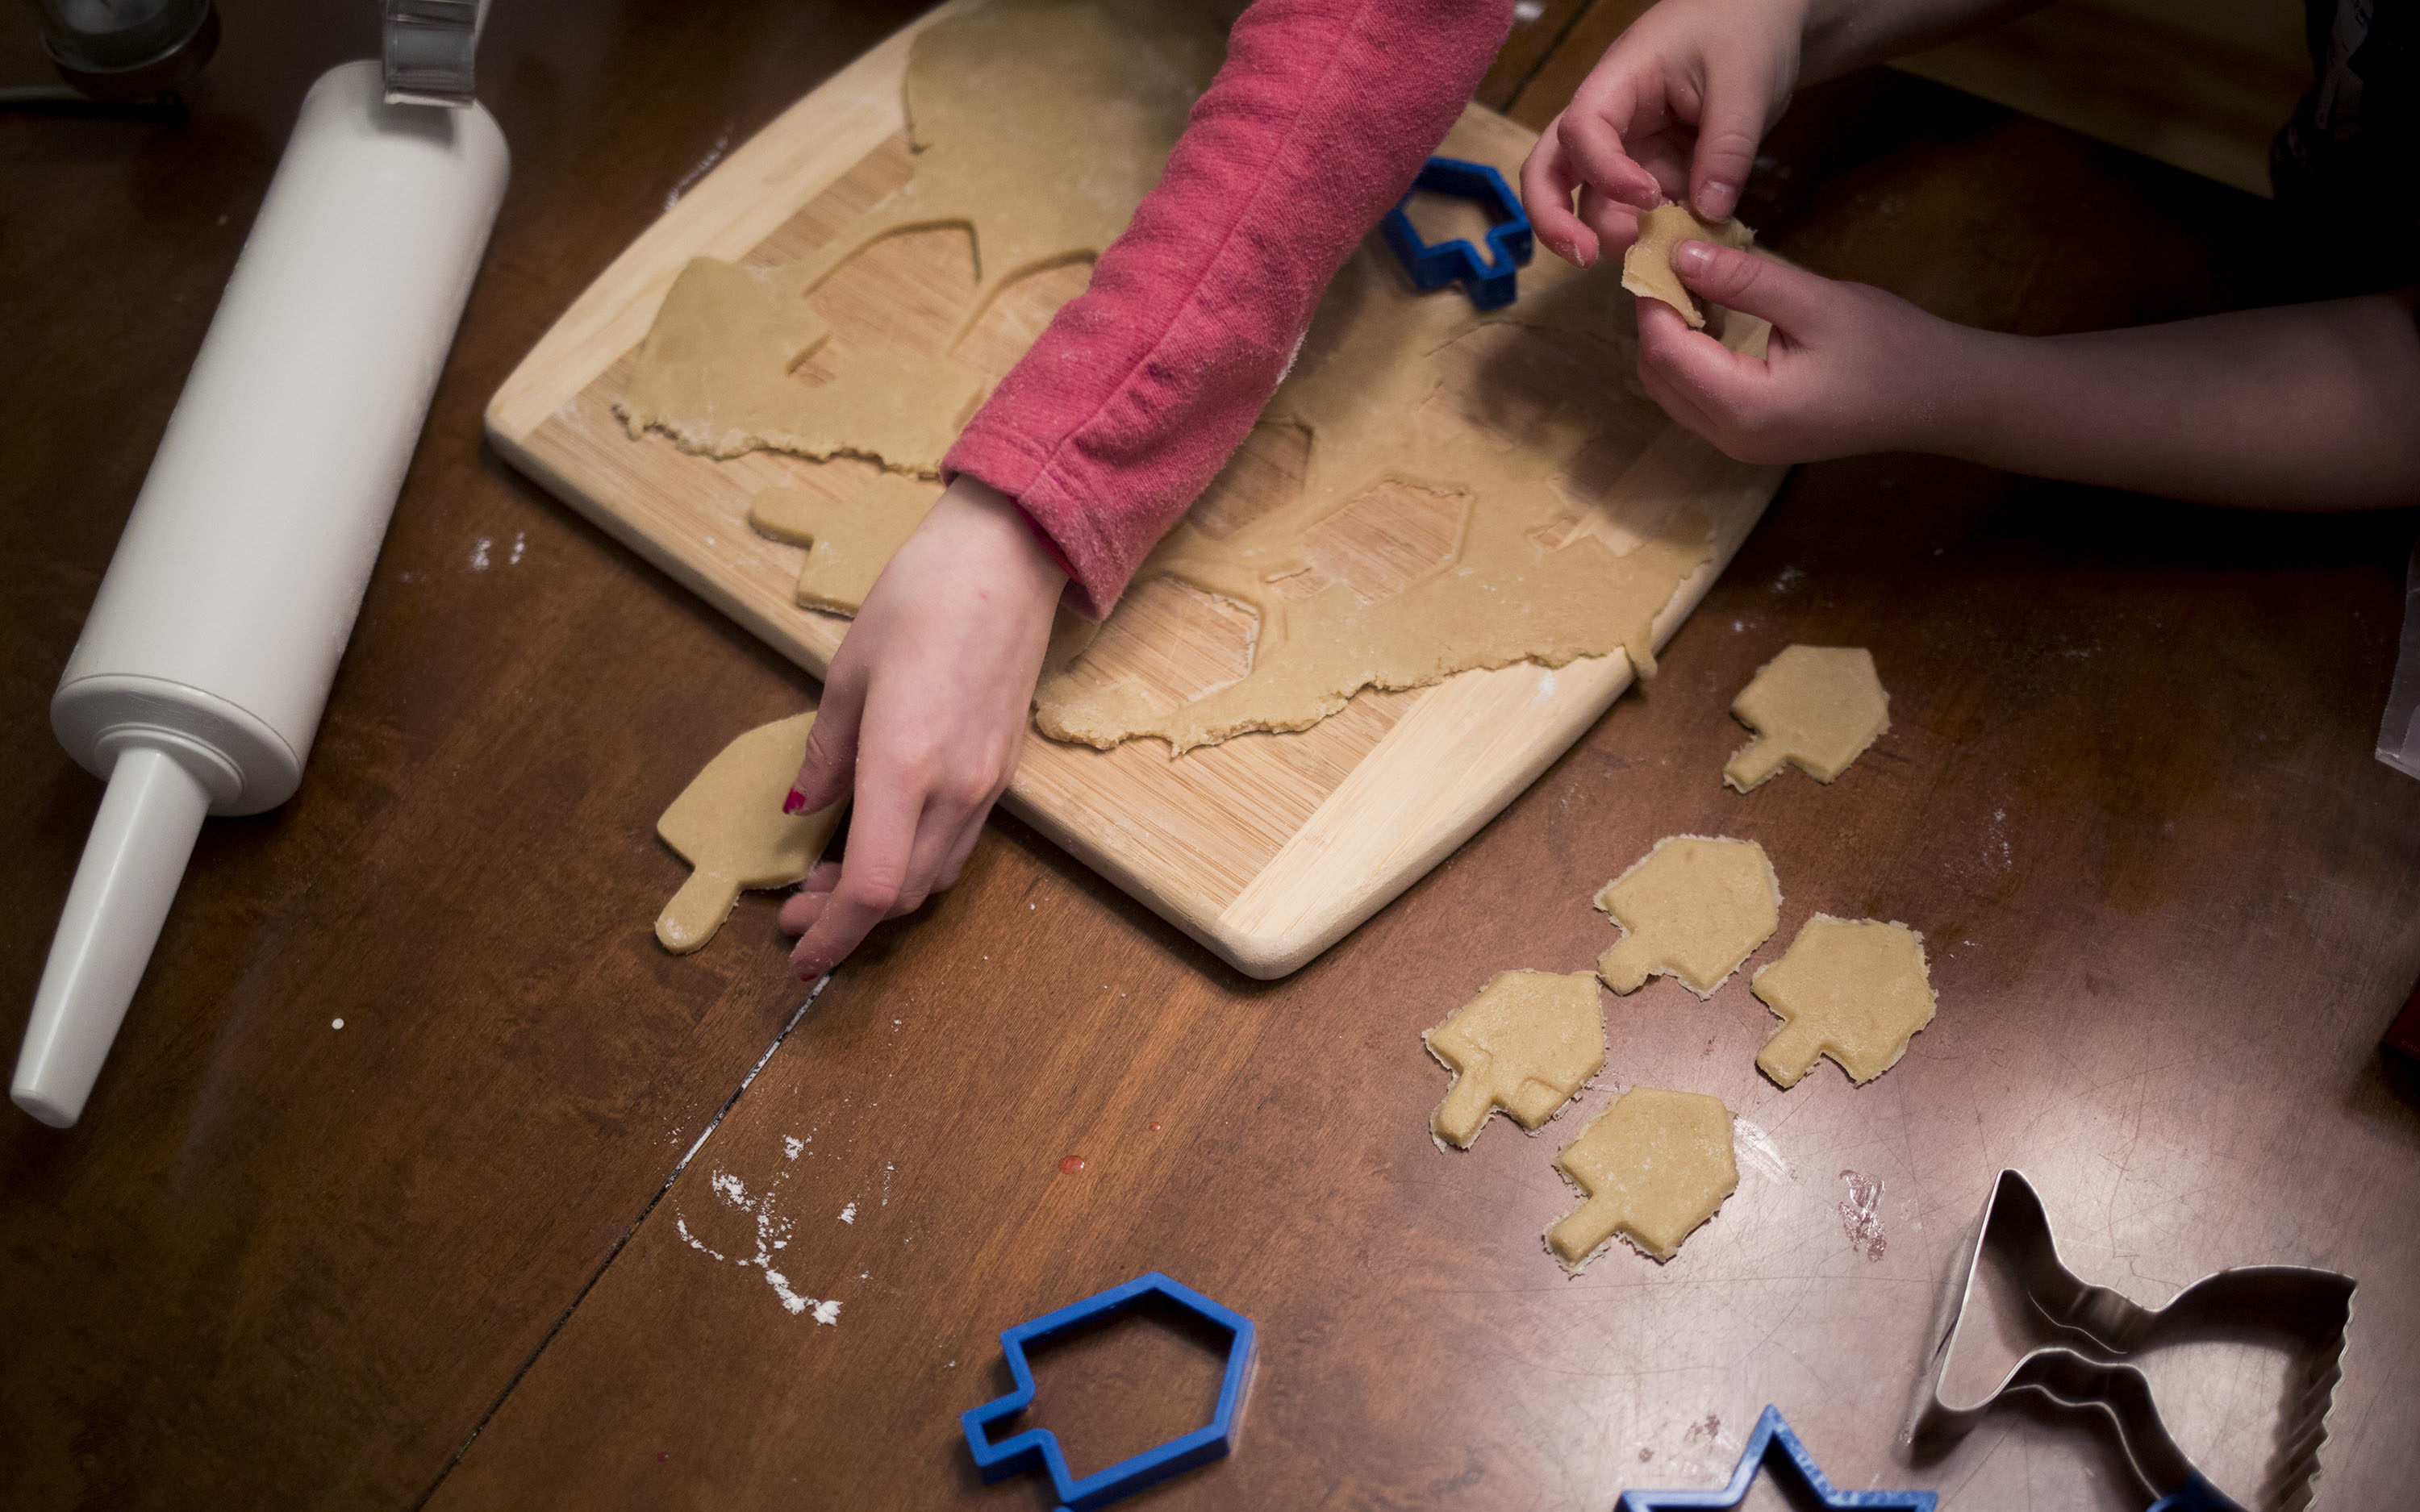 Bake-offs can add some spark to a Hanukkah party. (Photo/JTA-Brianna Soukup-Portland Press Herald-Getty Images)